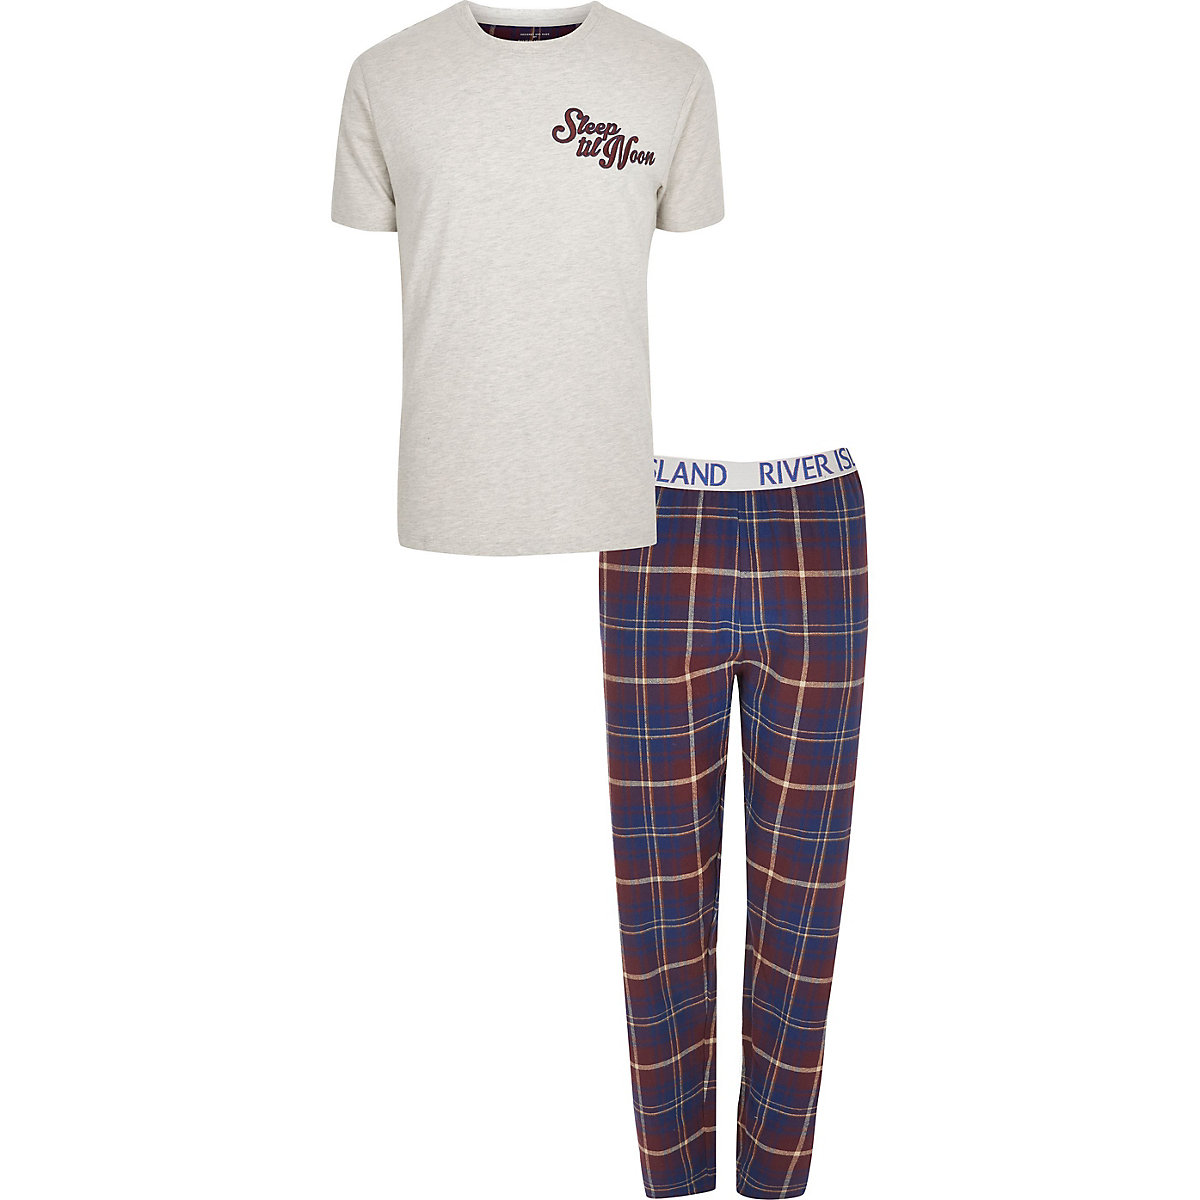 Big and Tall 'sleep till noon' pyjama set